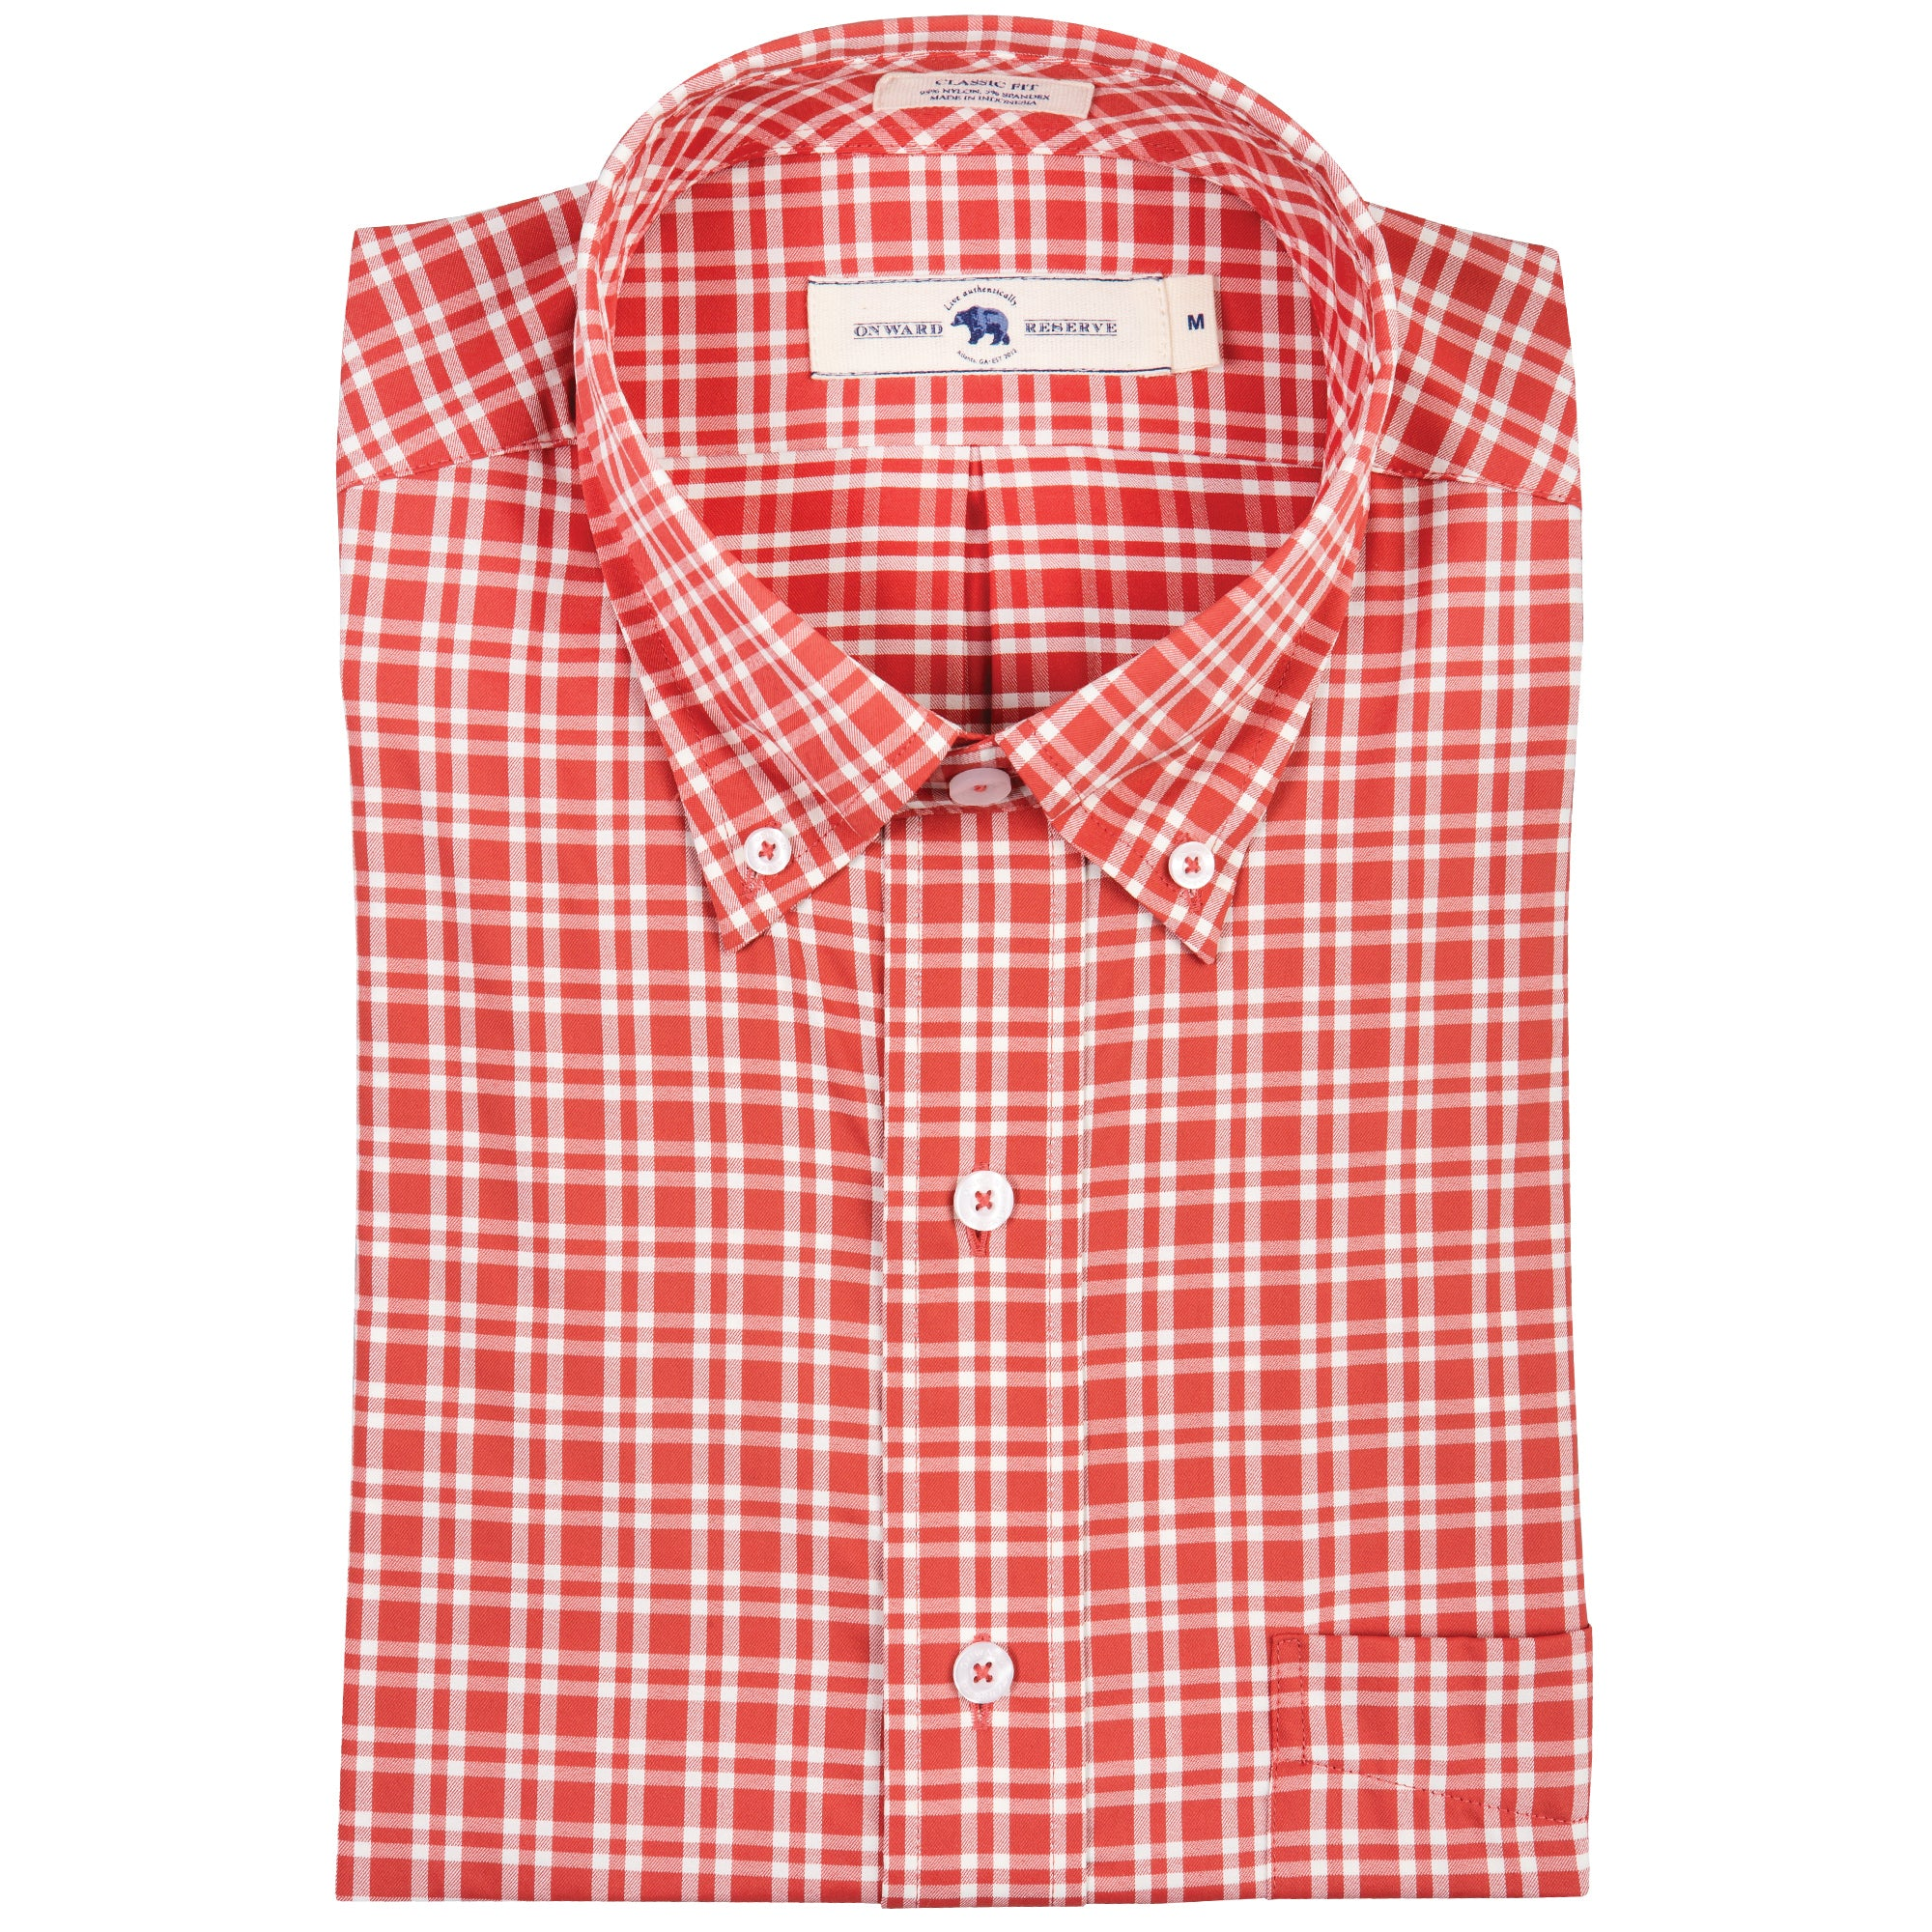 Heritage Classic Fit Performance Button Down